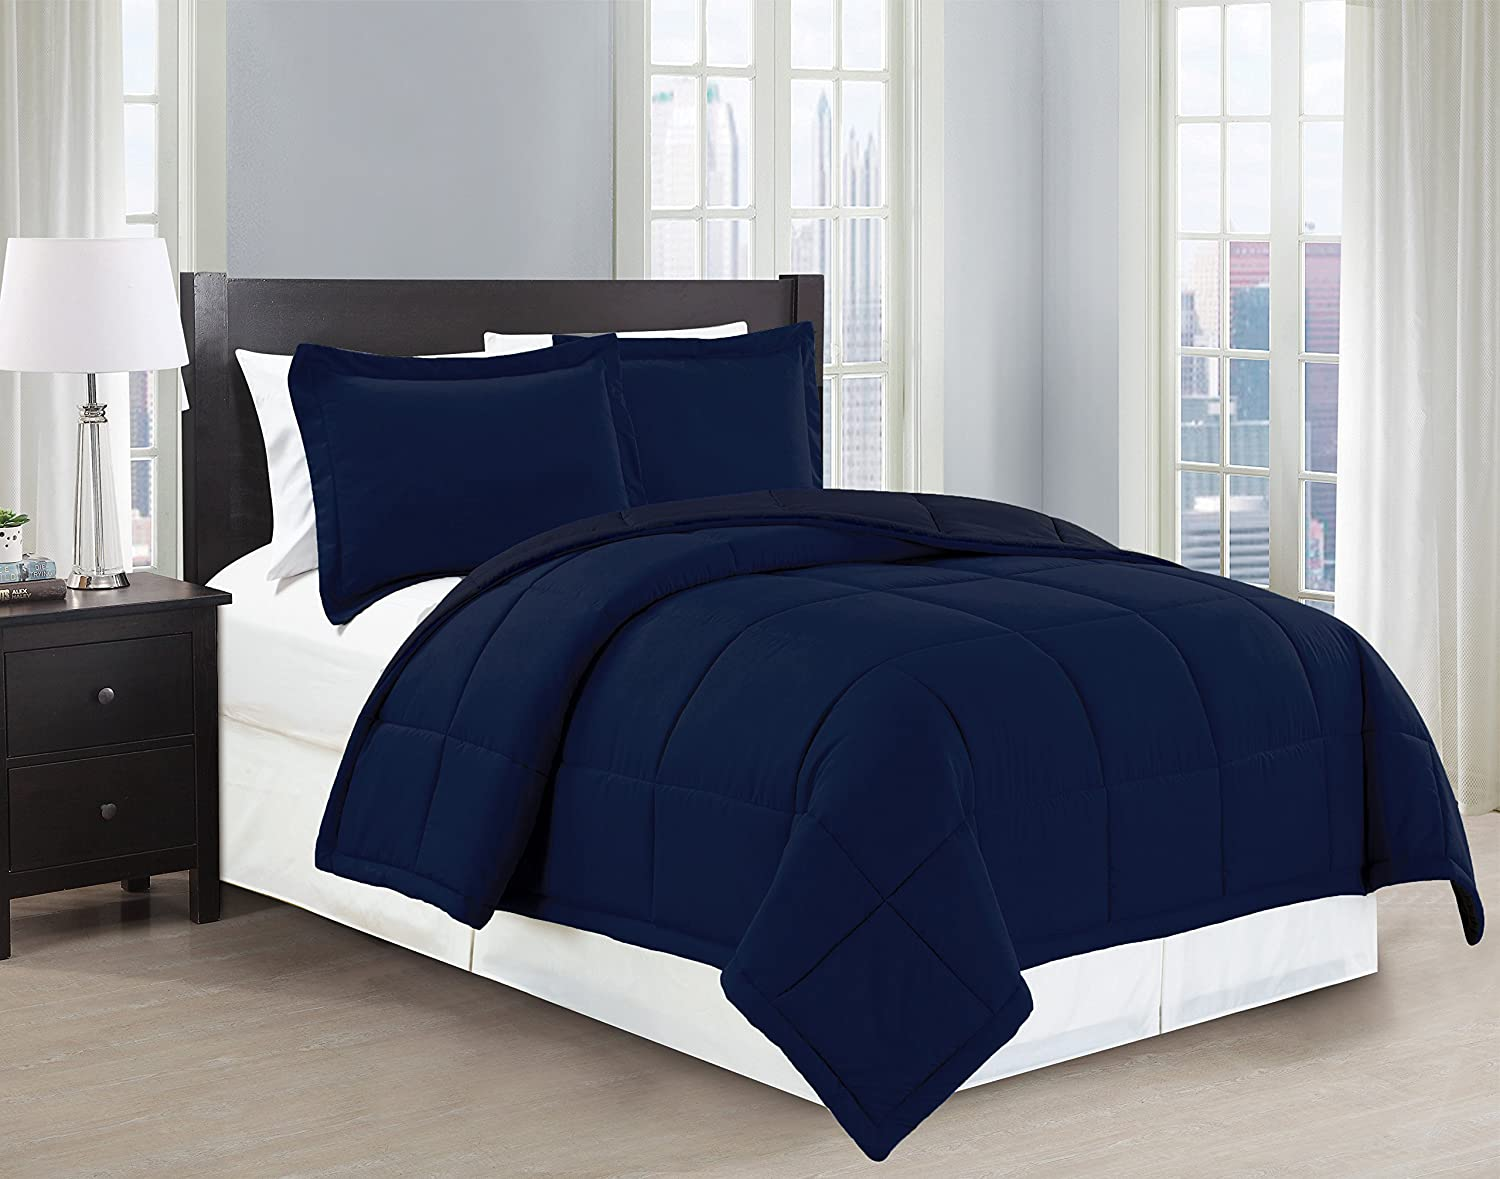 Mk Collection 3 Pc Down Alternative Comforter Set Solid king, Navy Blue New